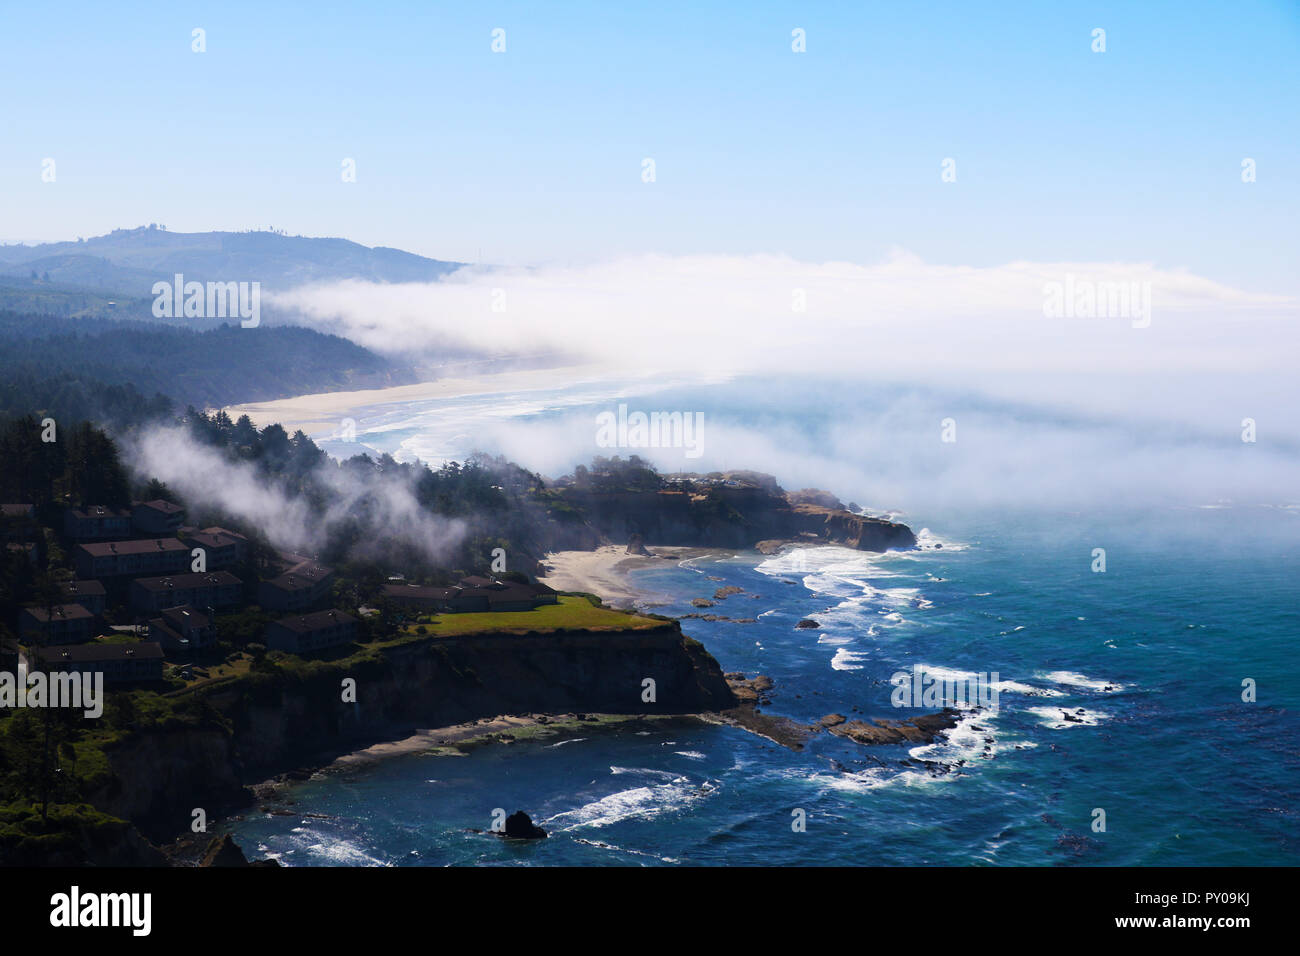 Beach on the ocean, view from above. Pacific Ocean, California Stock Photo